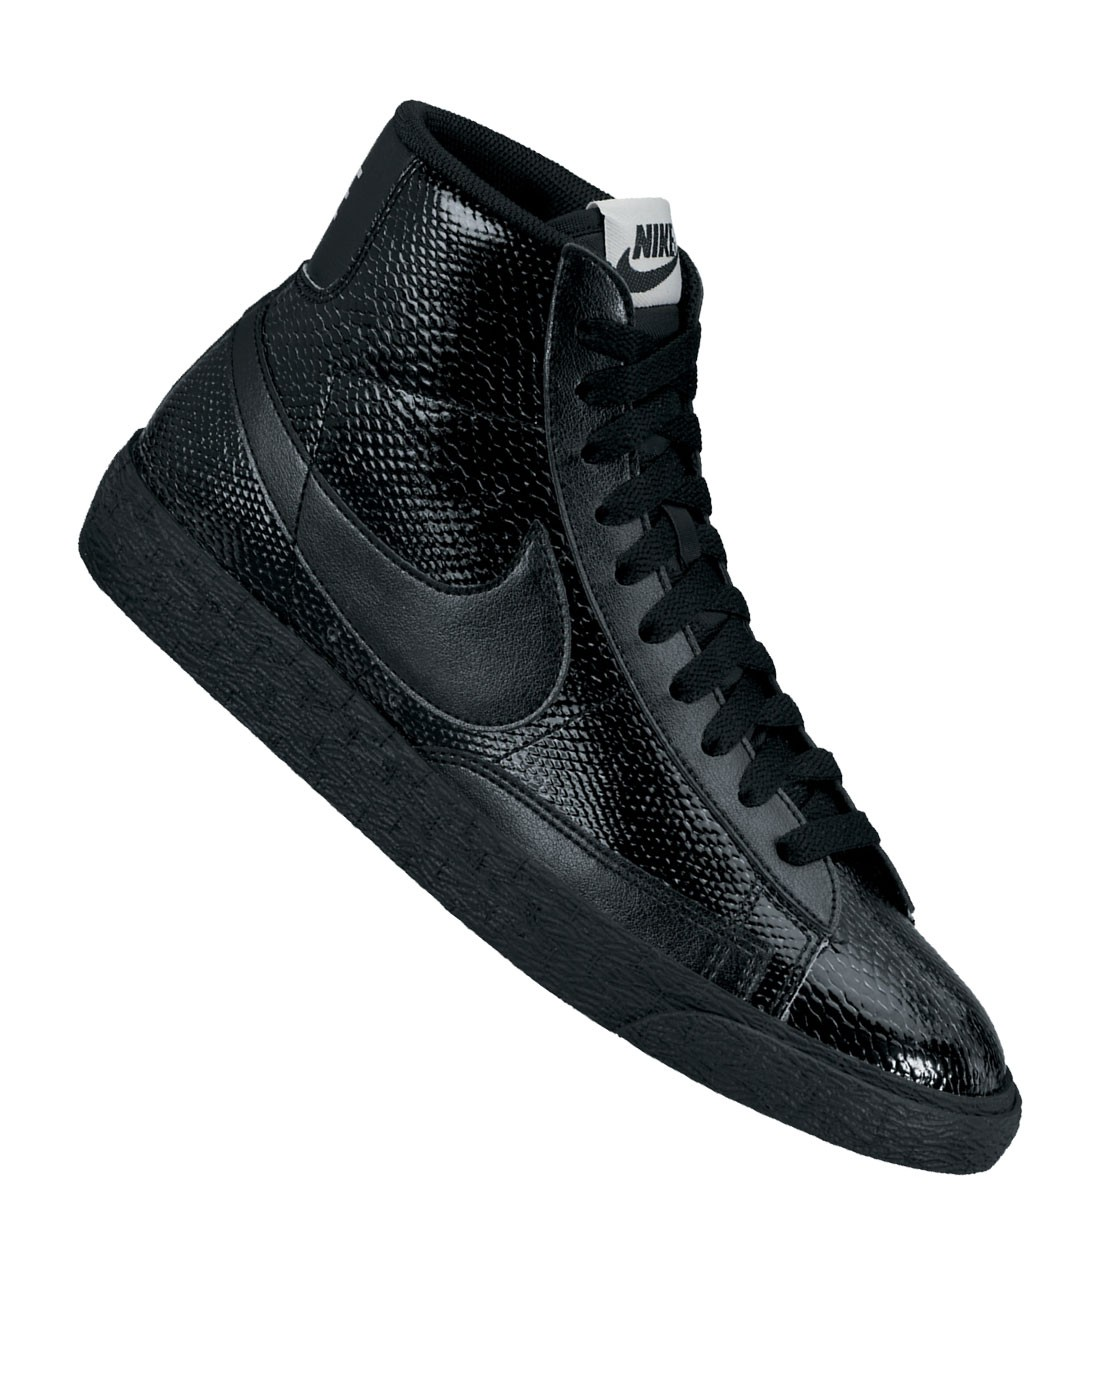 price 60 nike blazer mid leather premium ltr prm 685225. Black Bedroom Furniture Sets. Home Design Ideas